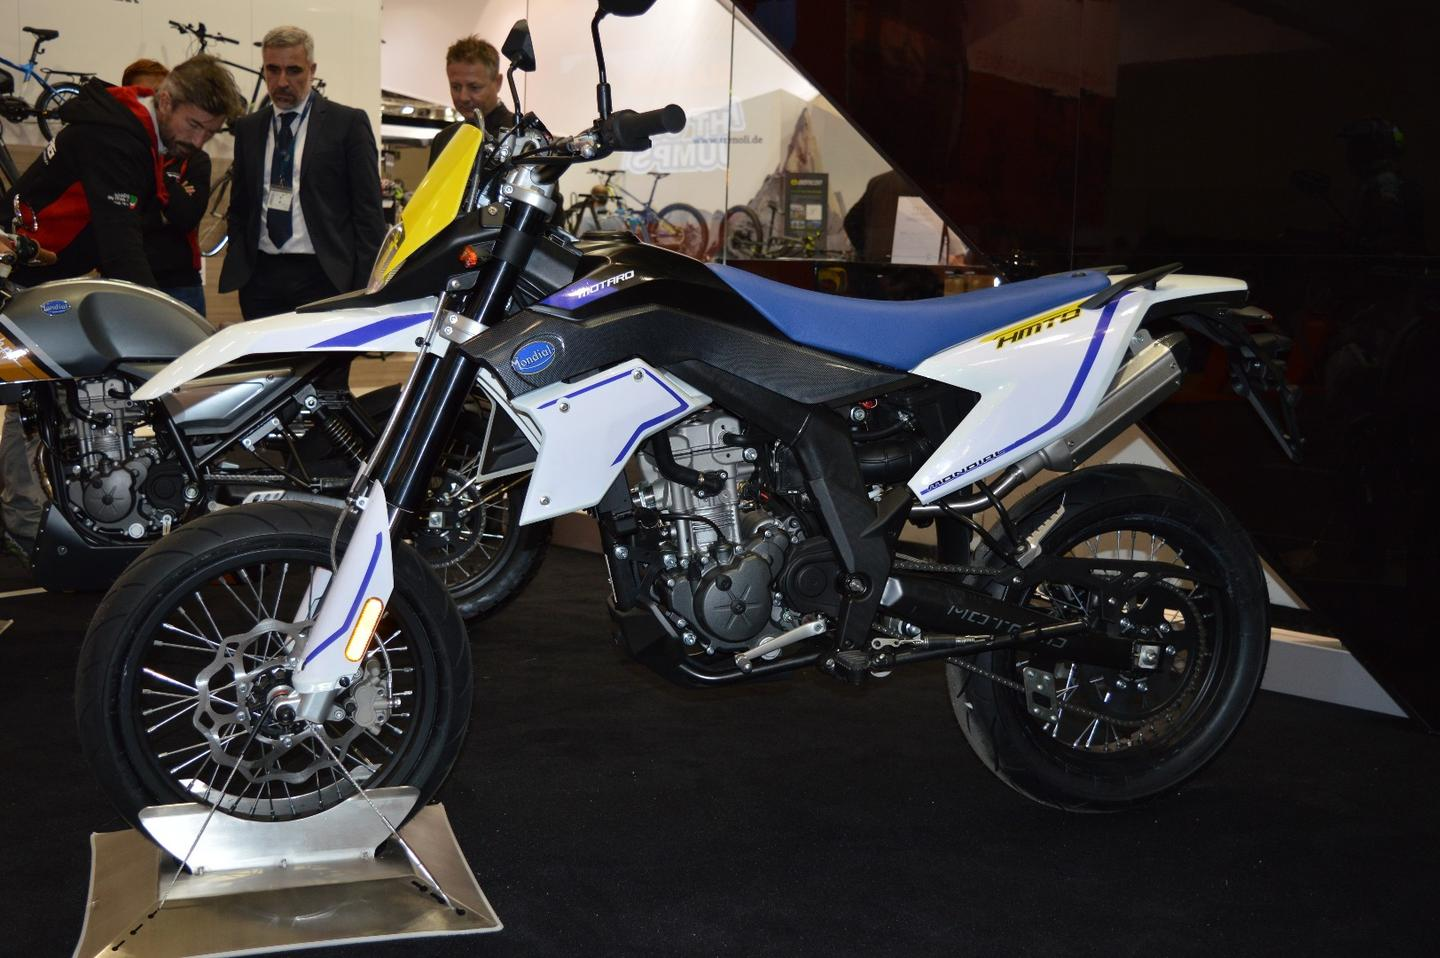 FBMondial occupied a small, dark corner at Intermot 2016to display the Hipster 125 and a new supermoto version built on the same base